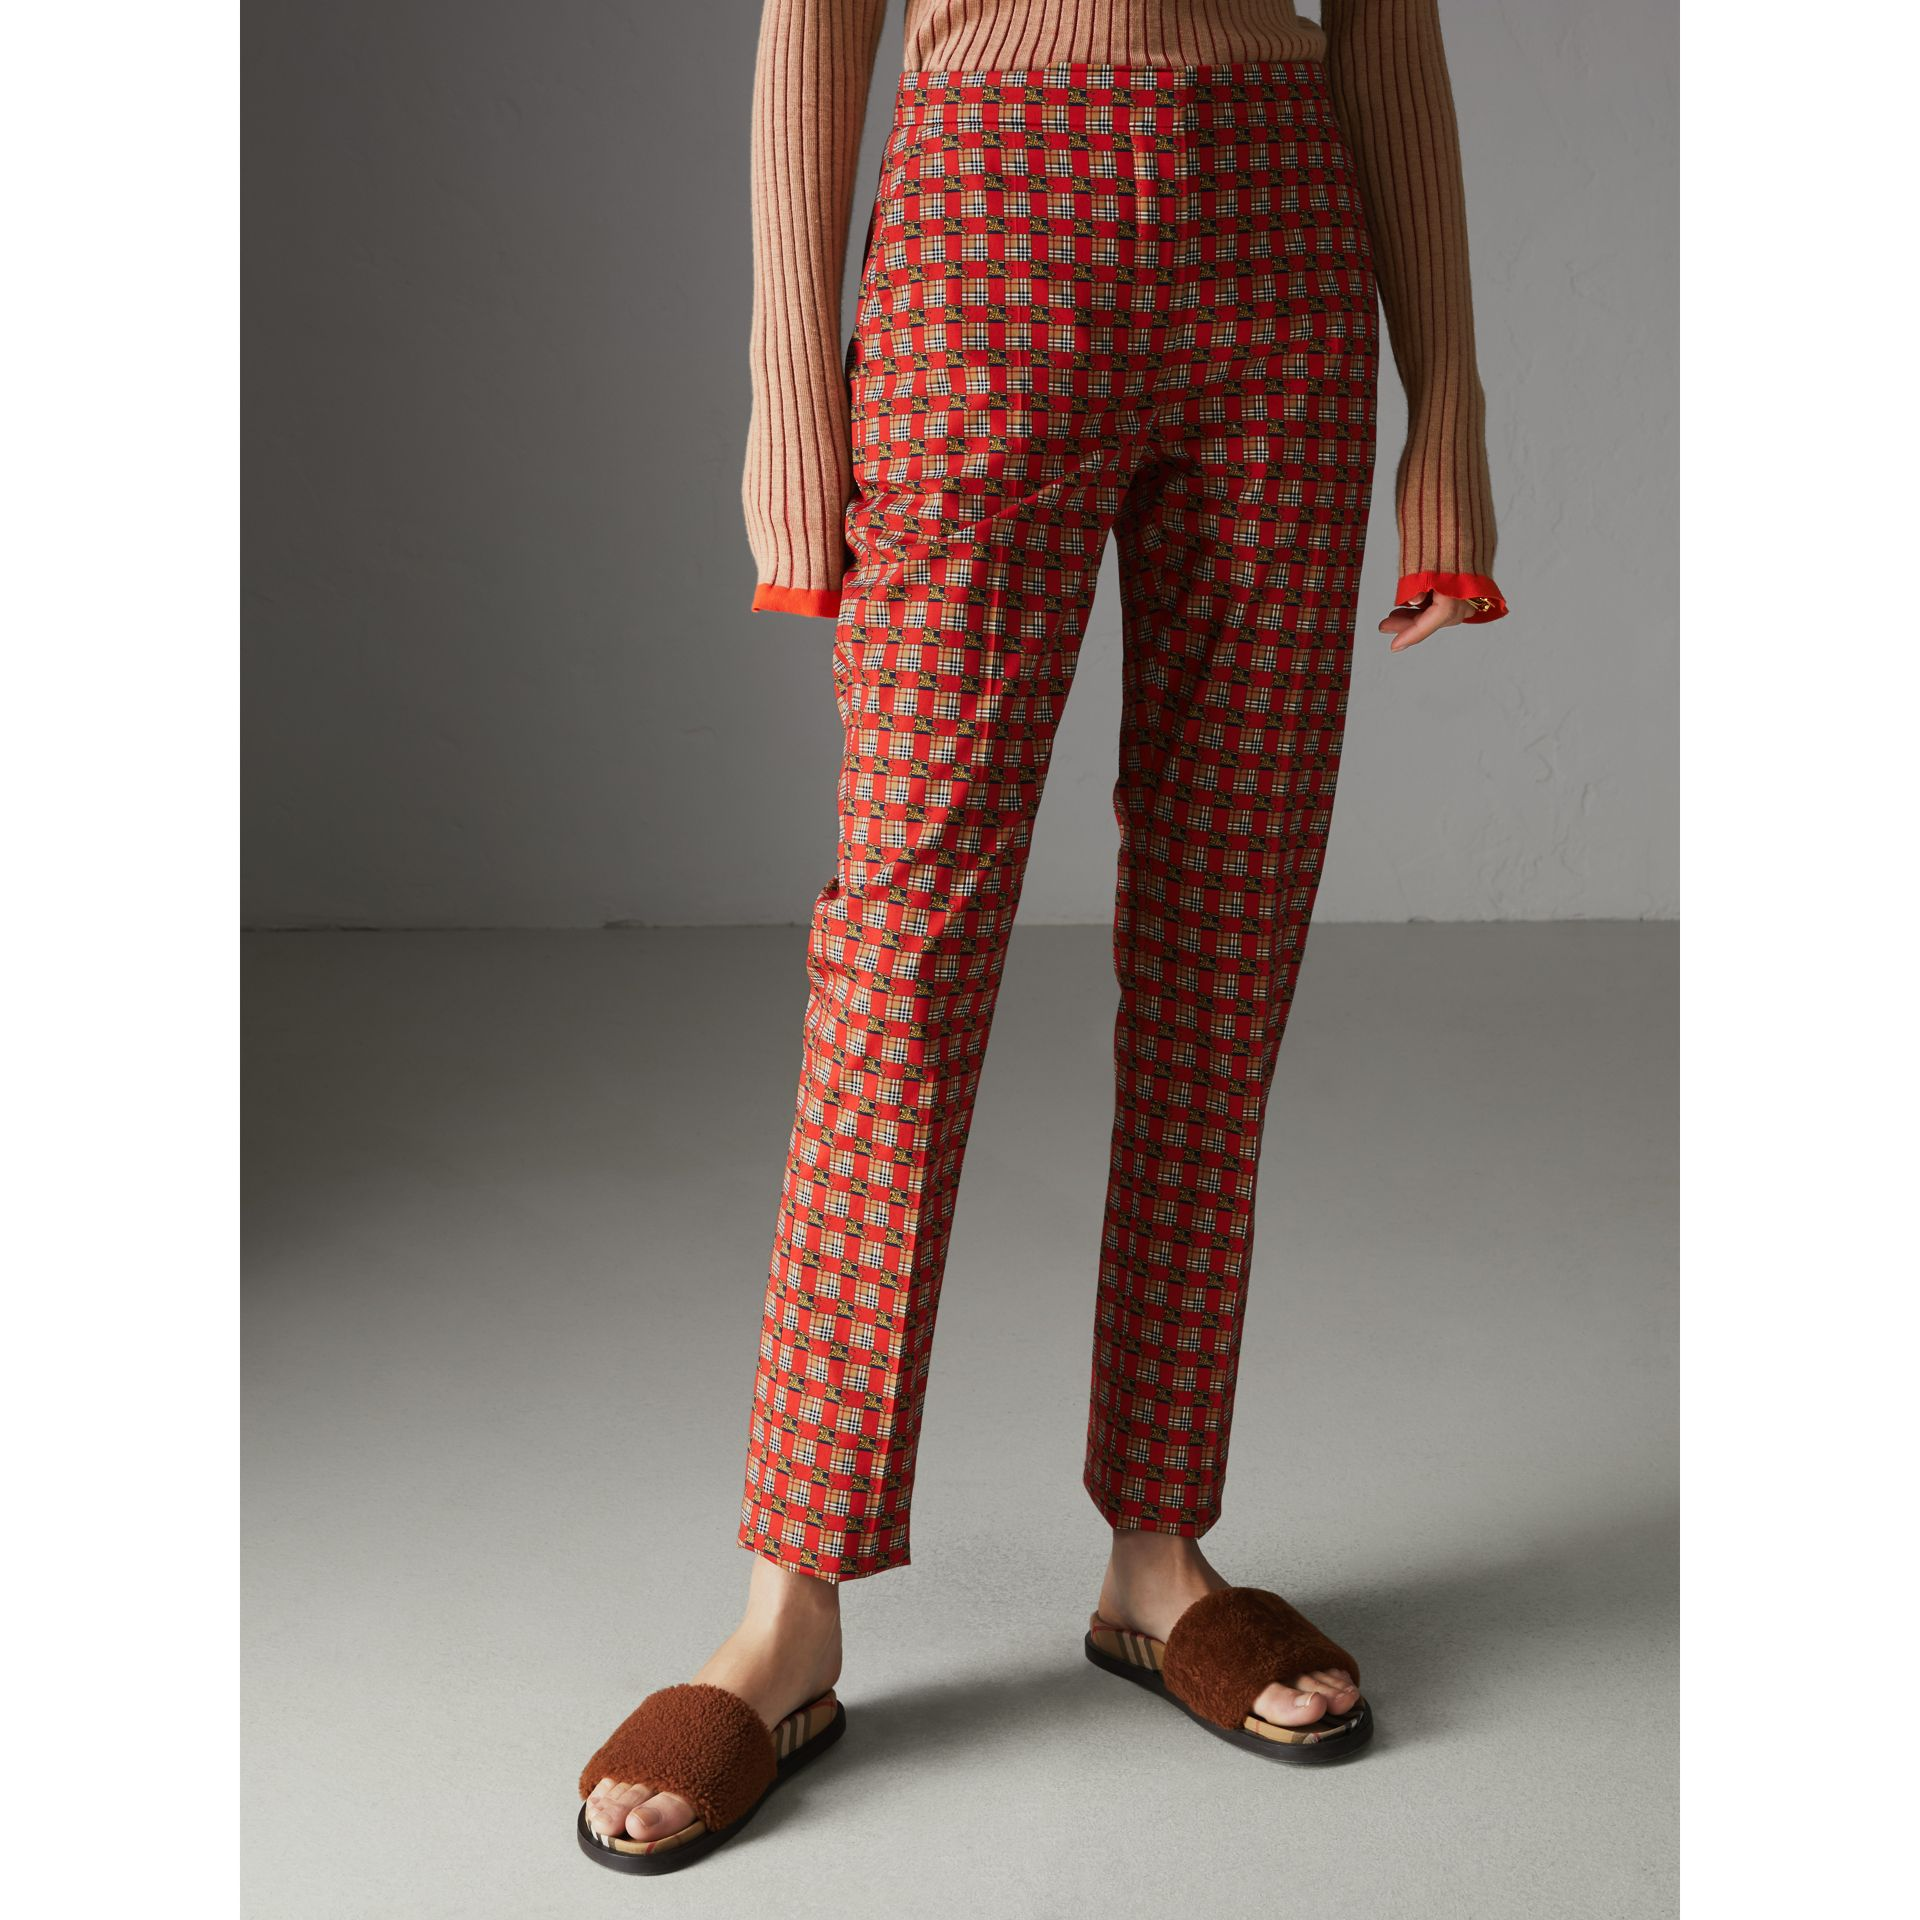 Tiled Archive Print Stretch Cotton Cigarette Trousers in Orange Red - Women | Burberry - gallery image 5